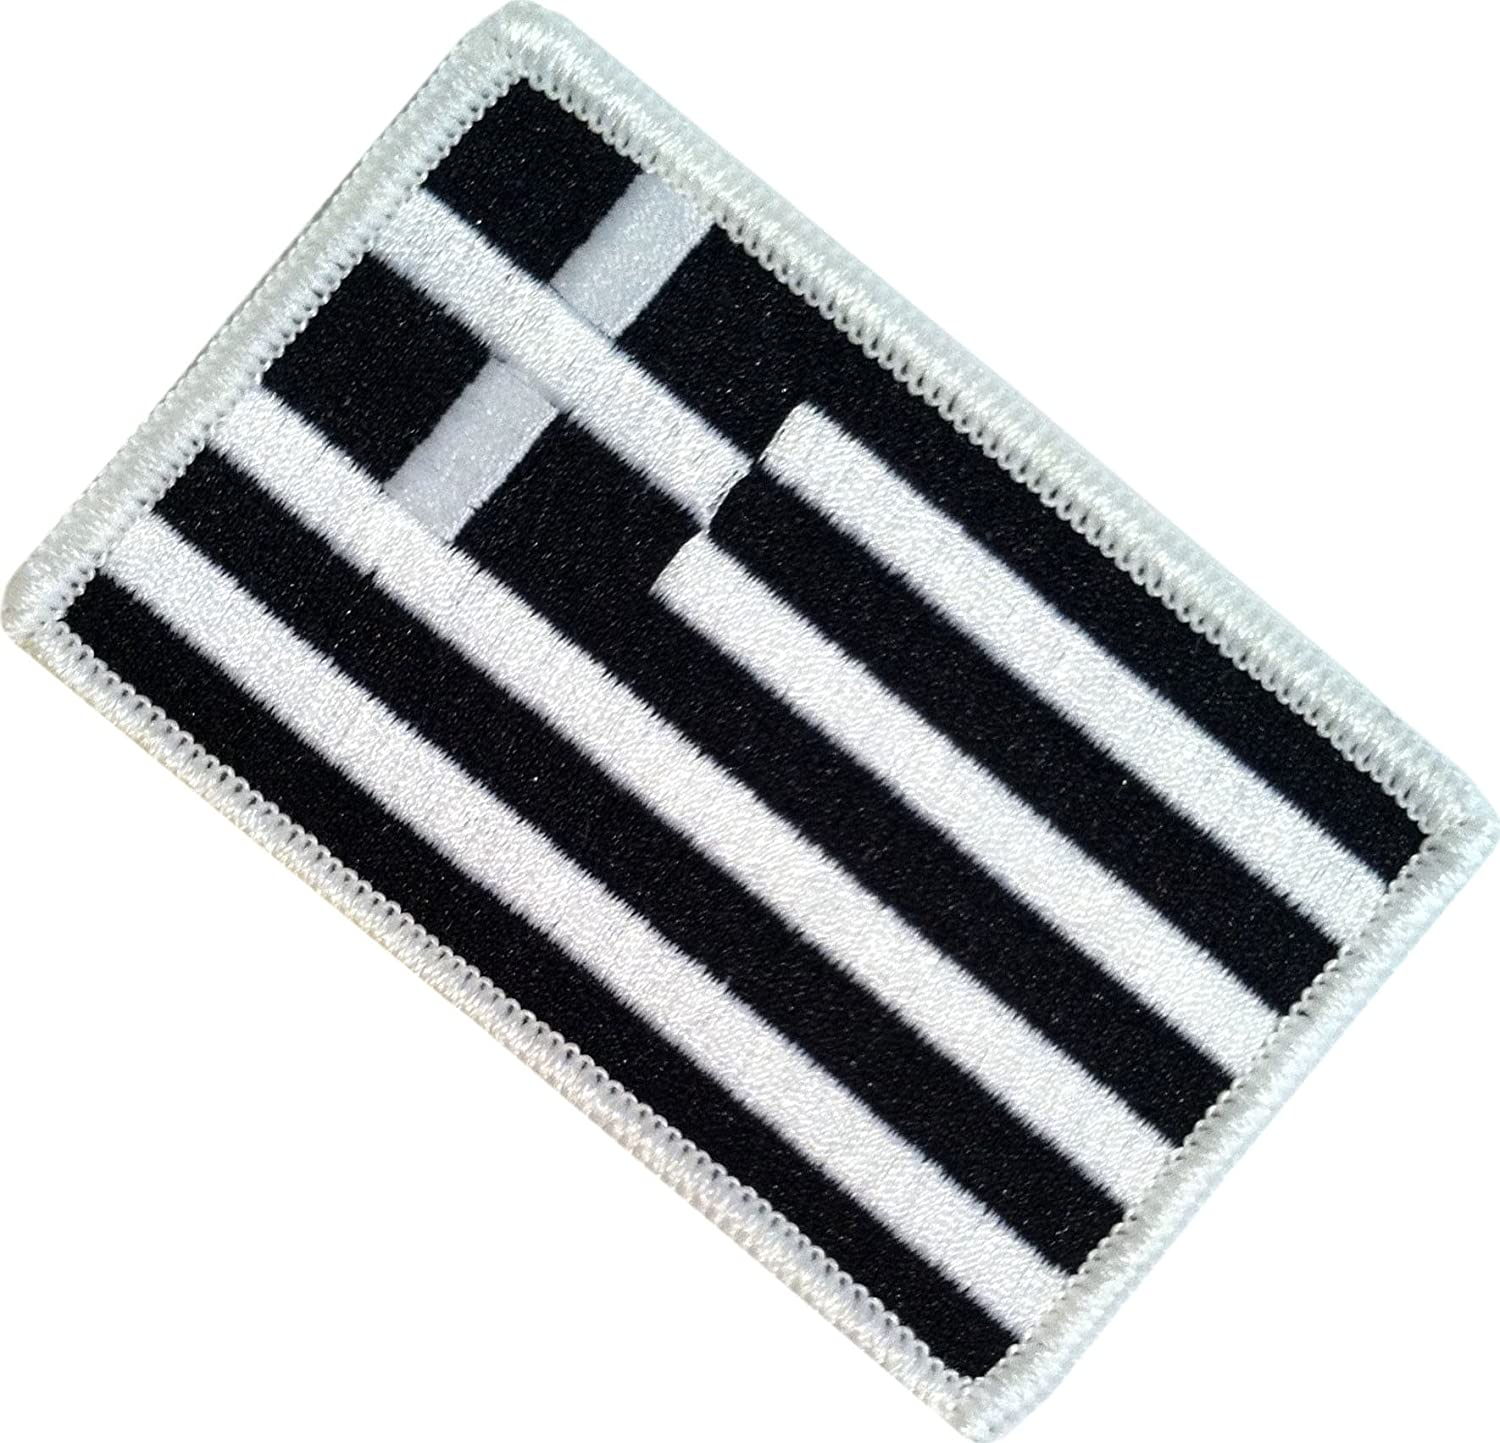 Cool /& Awesome {2.15 x 3.4 Inches} Small Rectangle Greece National Modern Greek Flag Badge National Cross /& Stripe Emblem Design Single Count Military Type Custom Velcro Patch Black /& White